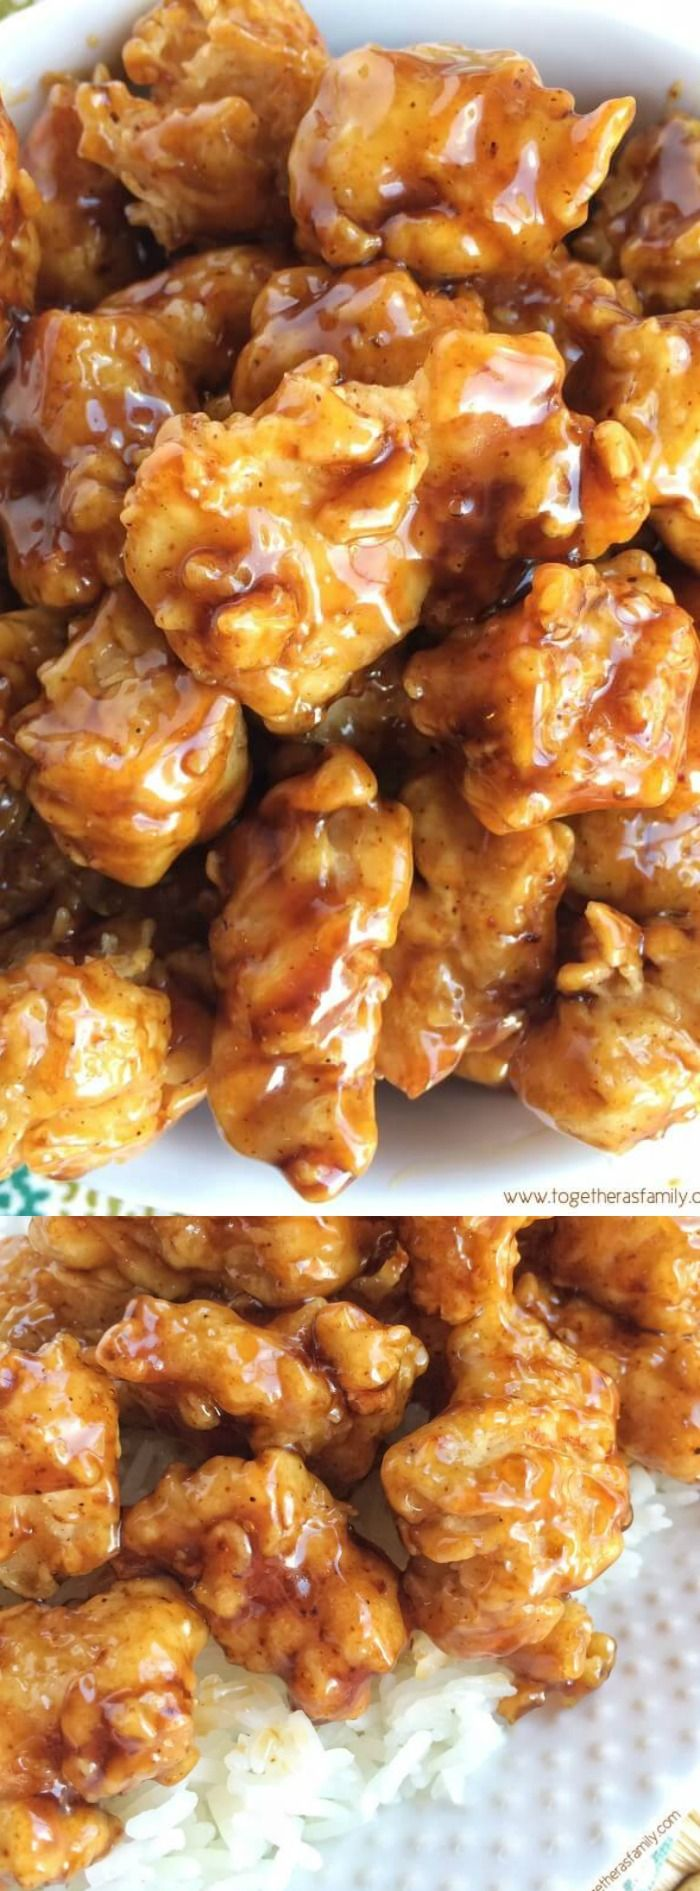 This Crispy Honey Chicken from Together as Family turns out so incredible and delicious! The chicken gets coated in seasoned flour and then dipped in buttermilk and fried until super crispy.